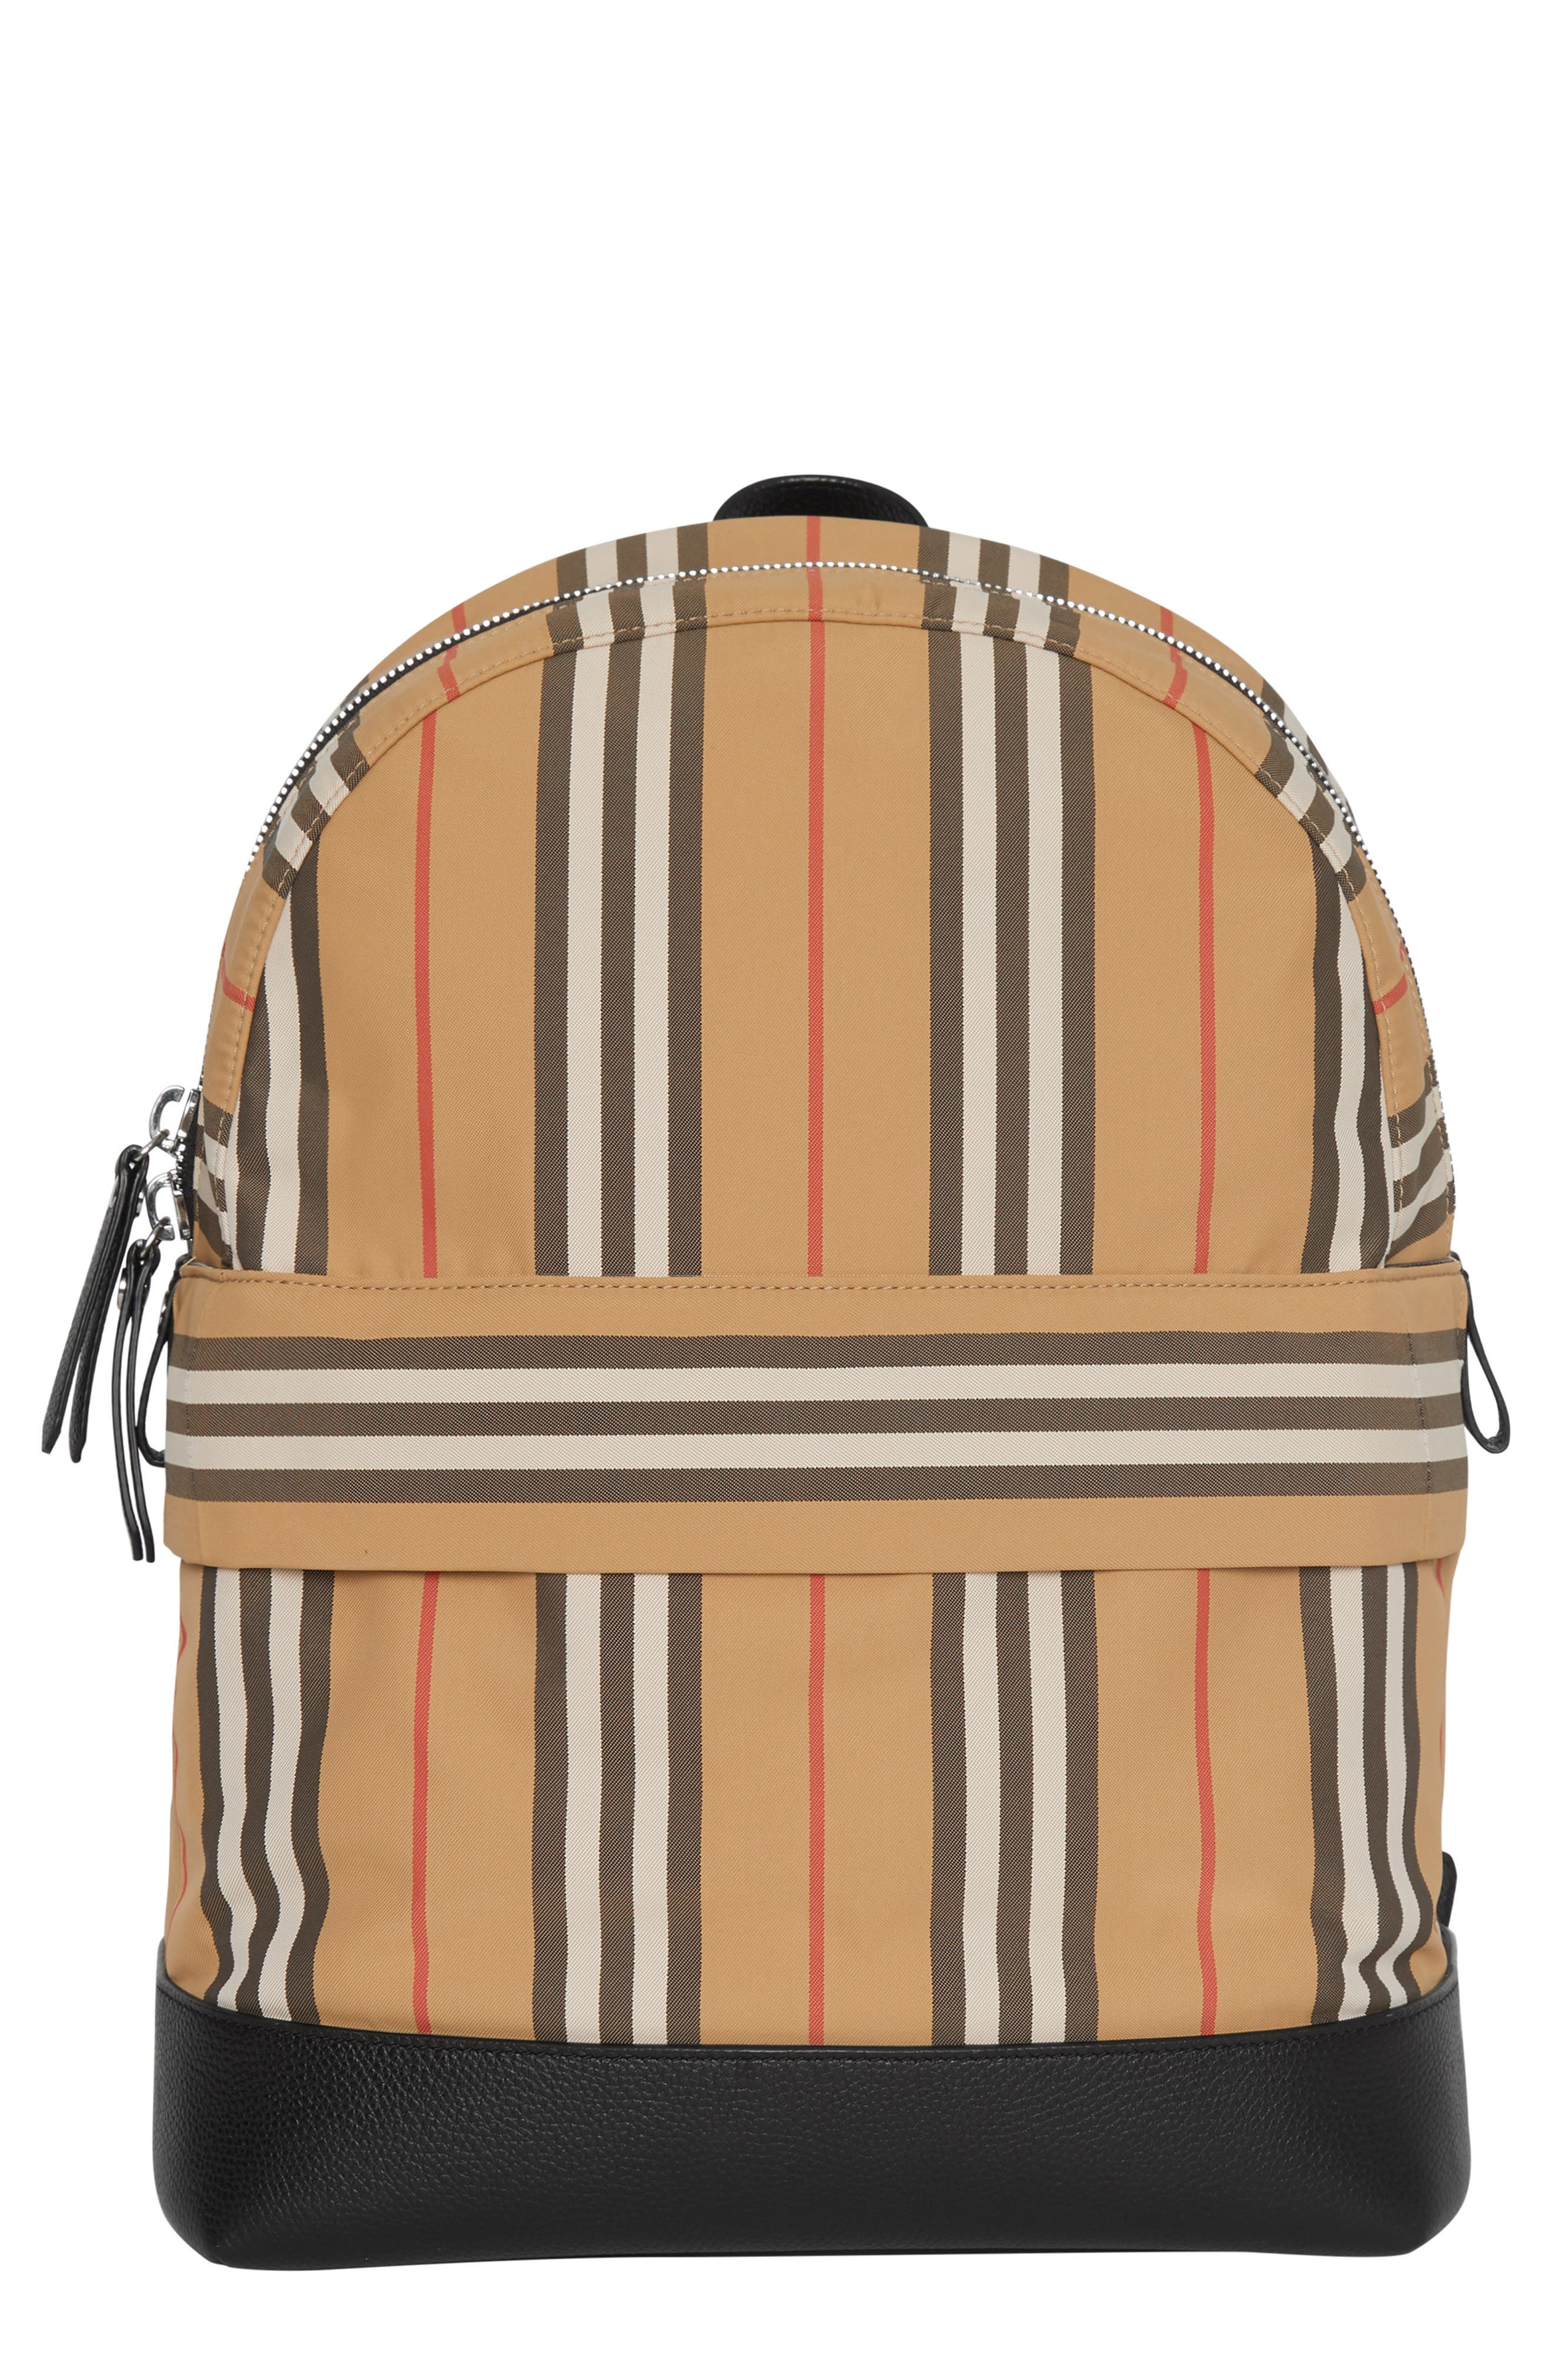 BURBERRY, Nico Archive Stripe Backpack, Main thumbnail 1, color, ARCHIVE BEIGE